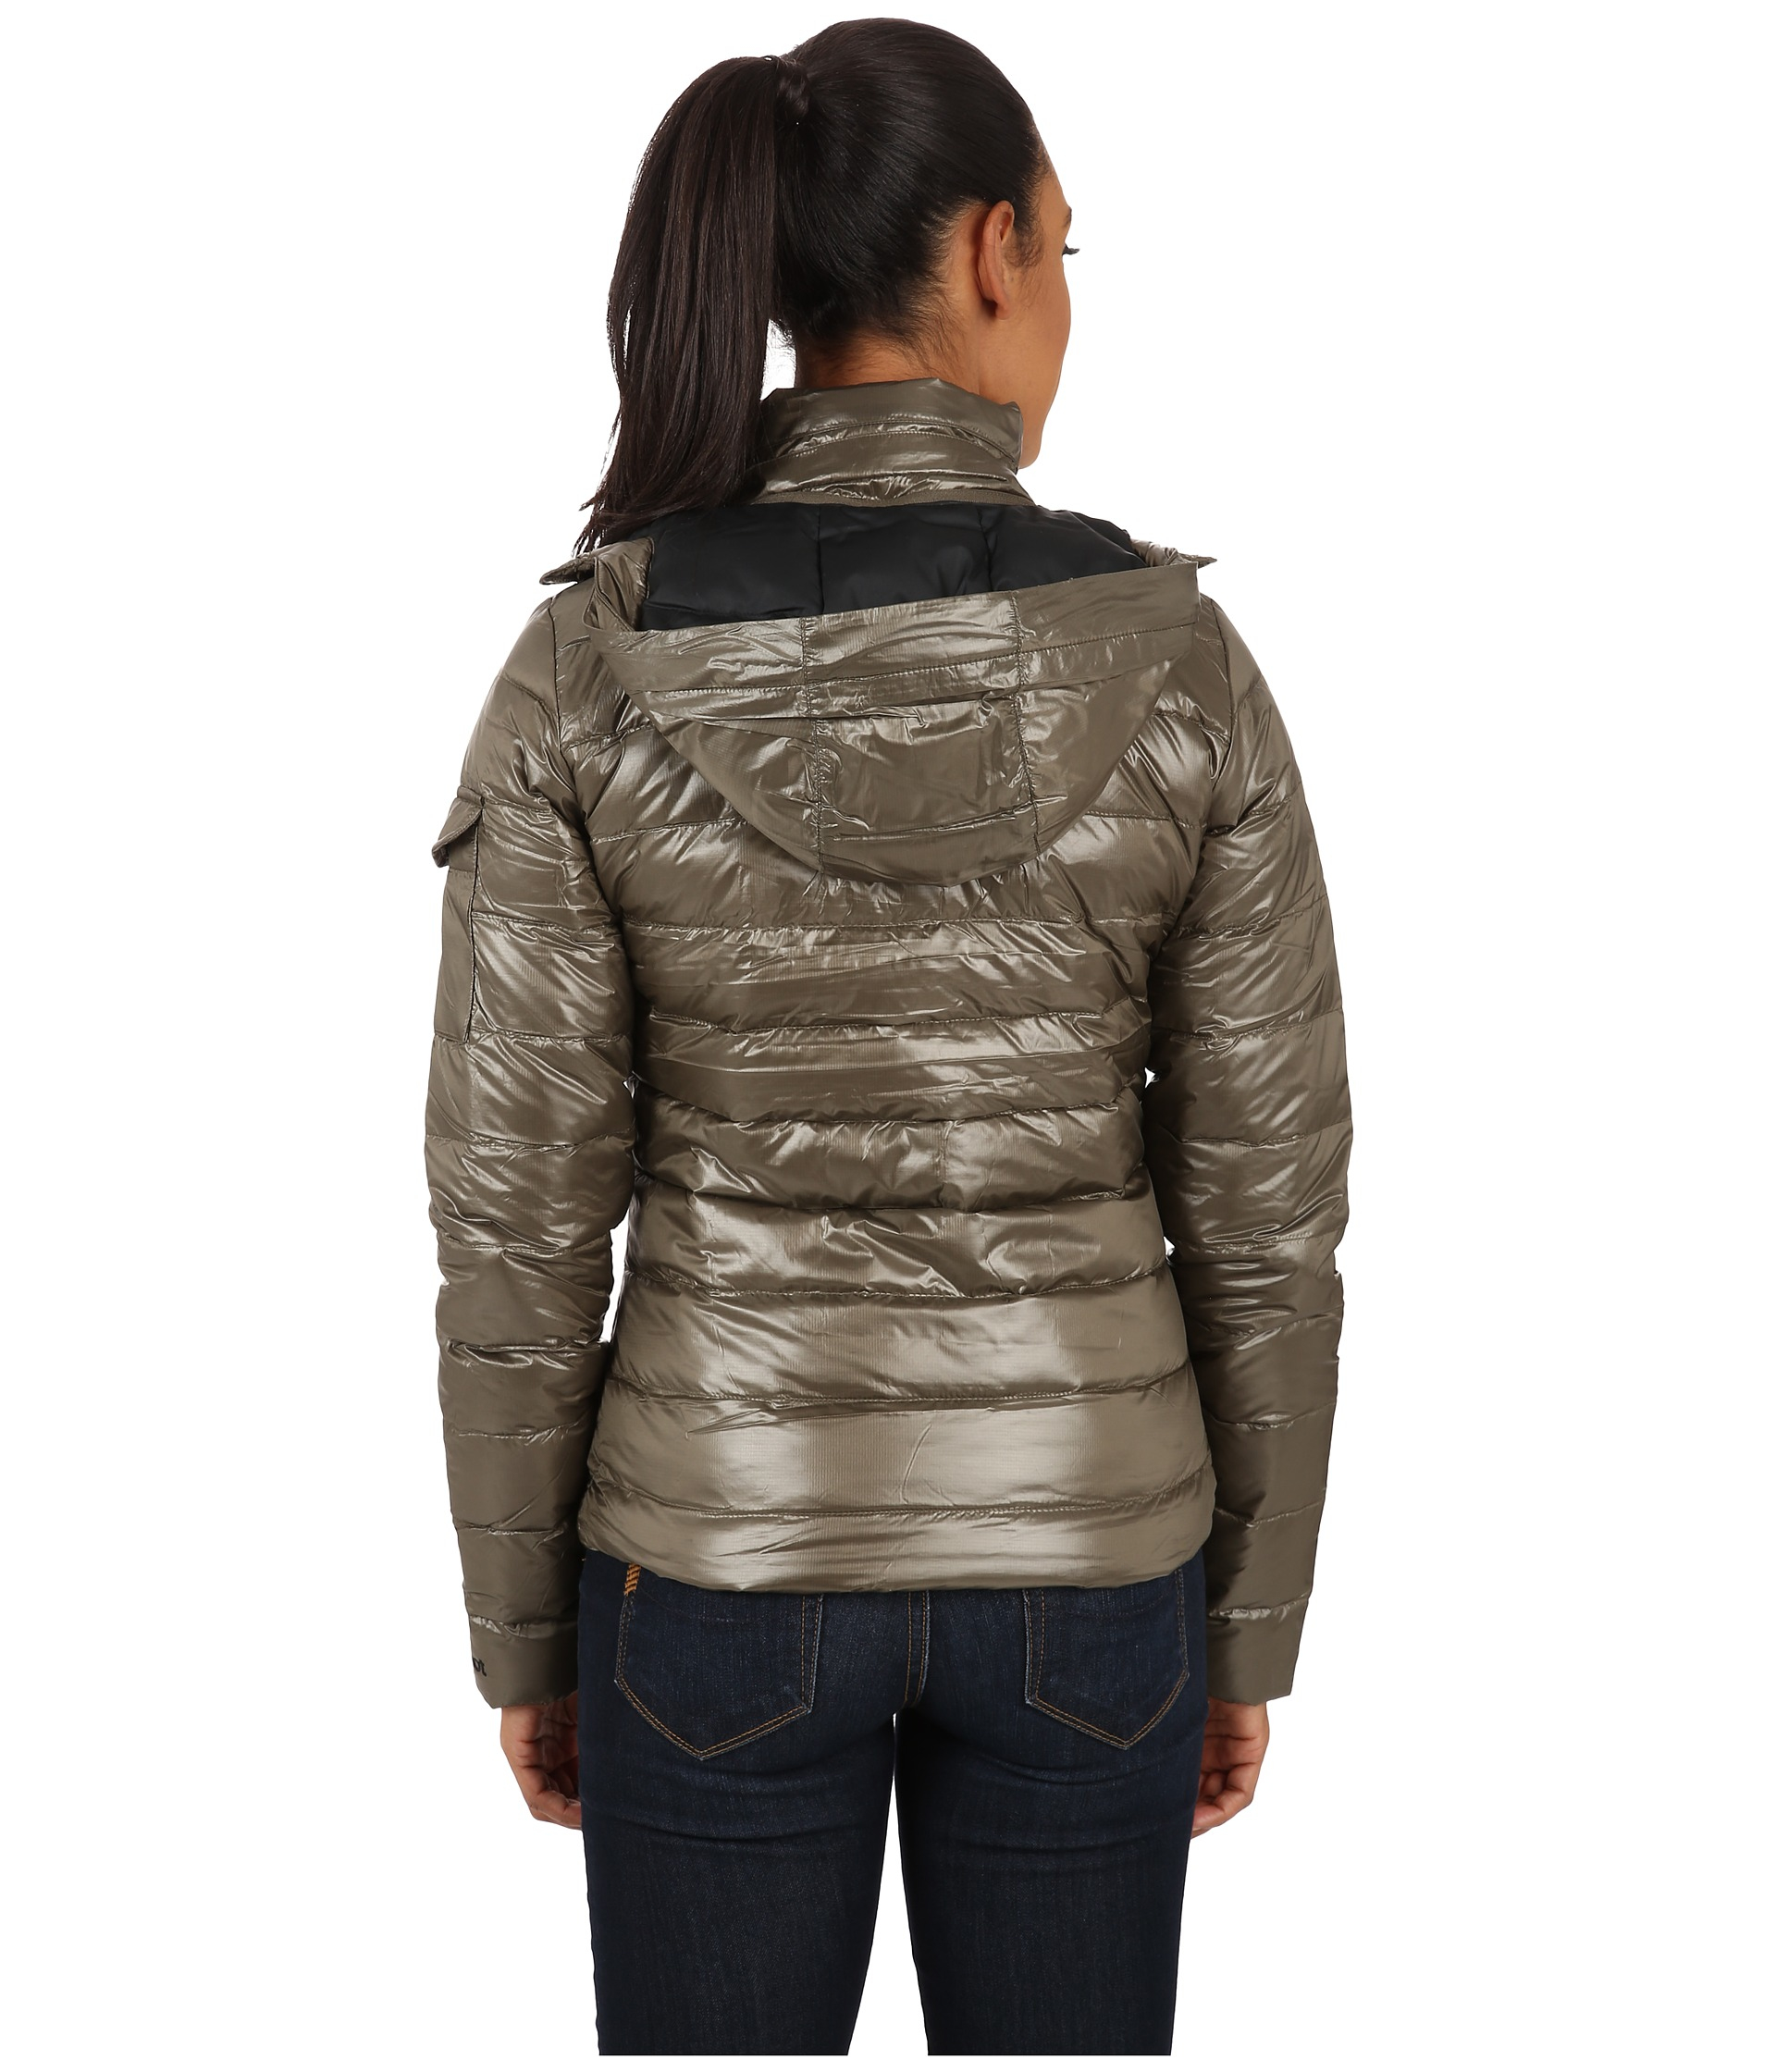 Lyst - Marmot Hailey Jacket in Green : marmot quilted jacket - Adamdwight.com